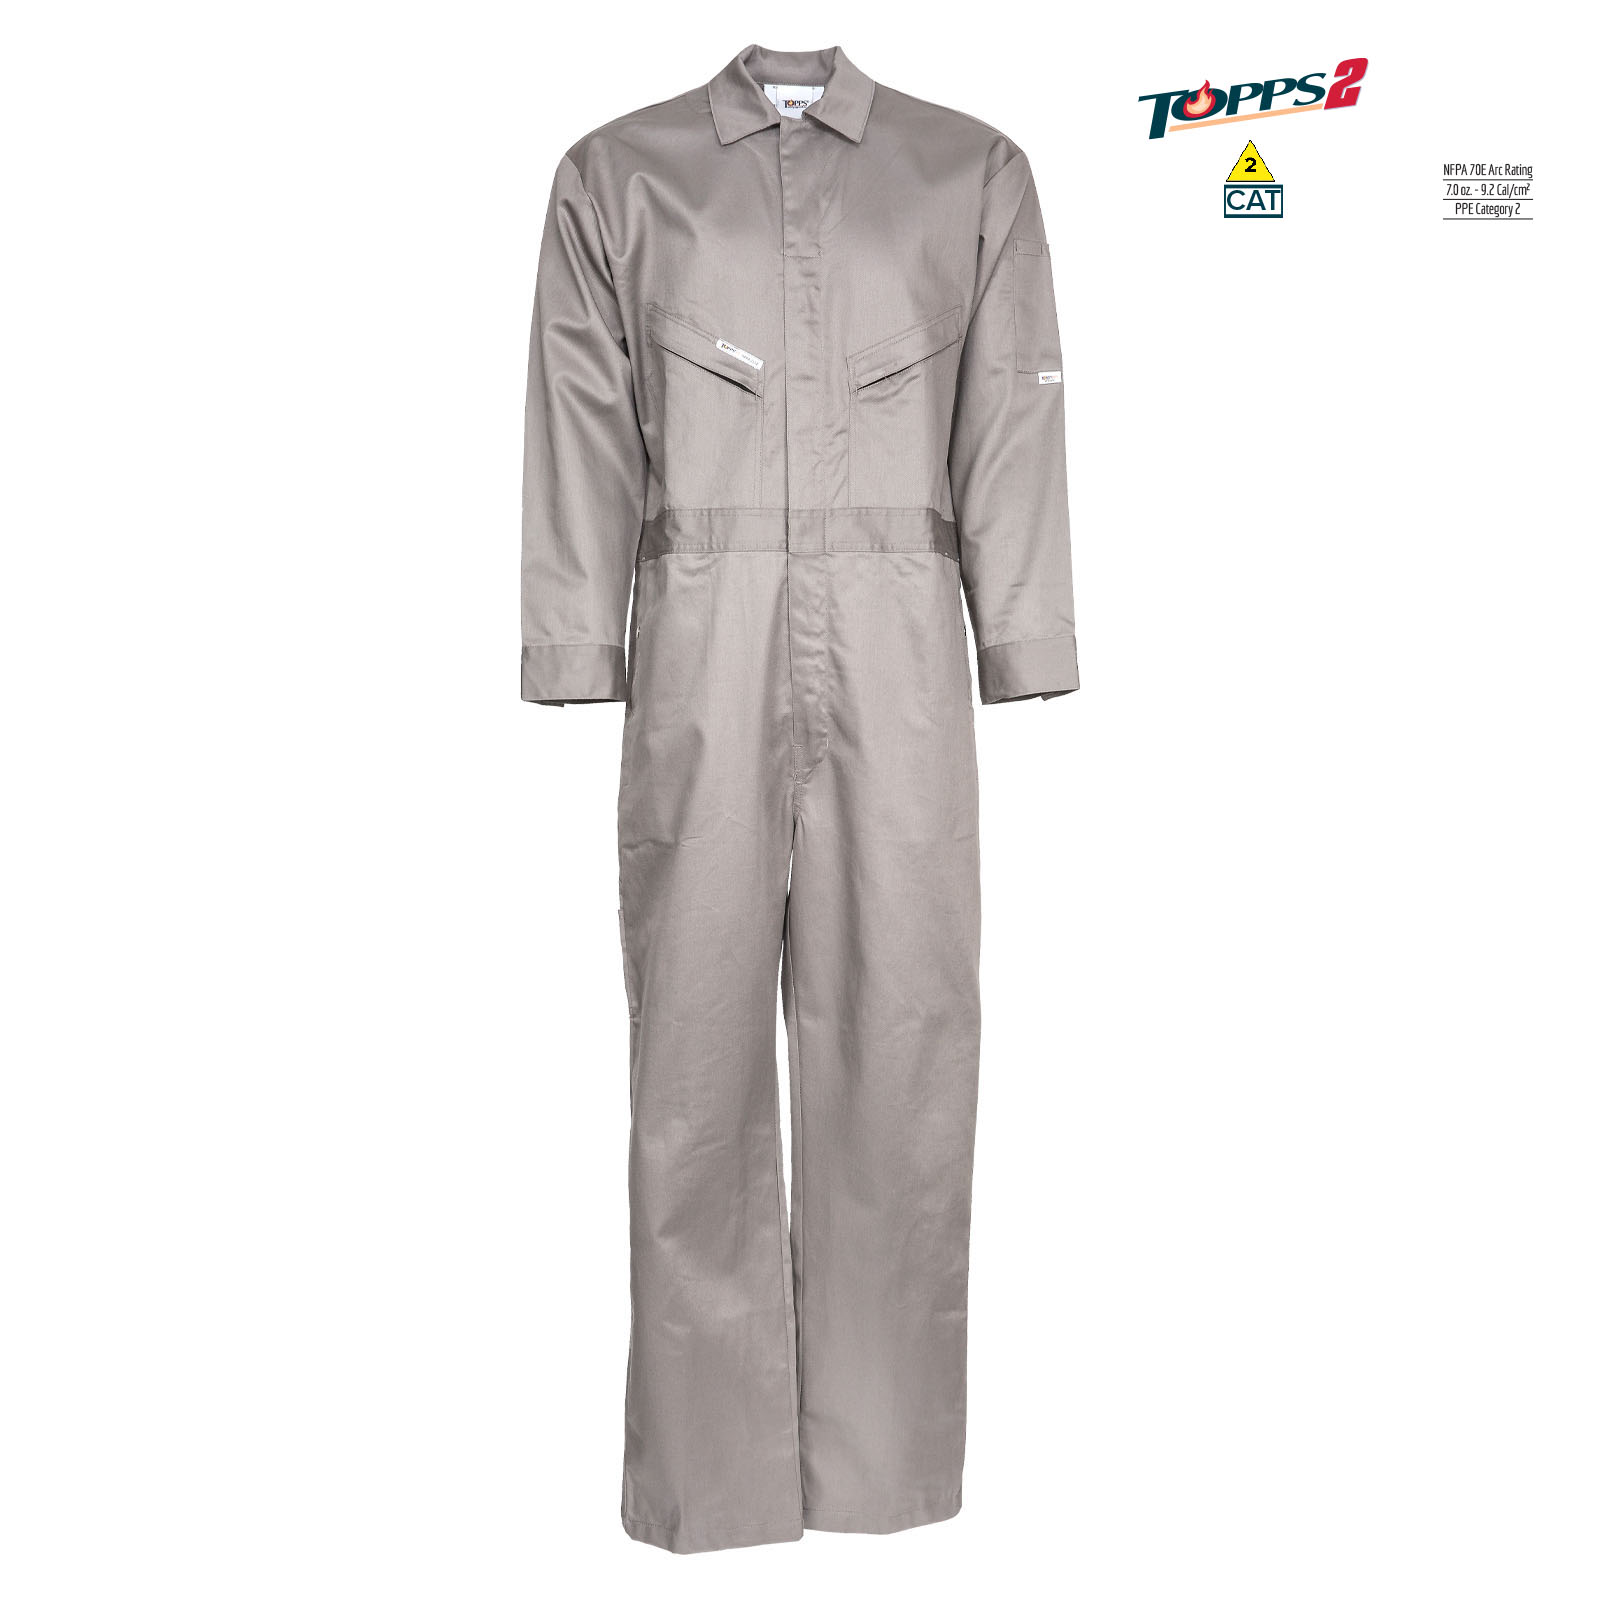 88/12 Cotton/Nylon Blend Flame Resistant Lightweight Economy Oil Field Coverall-